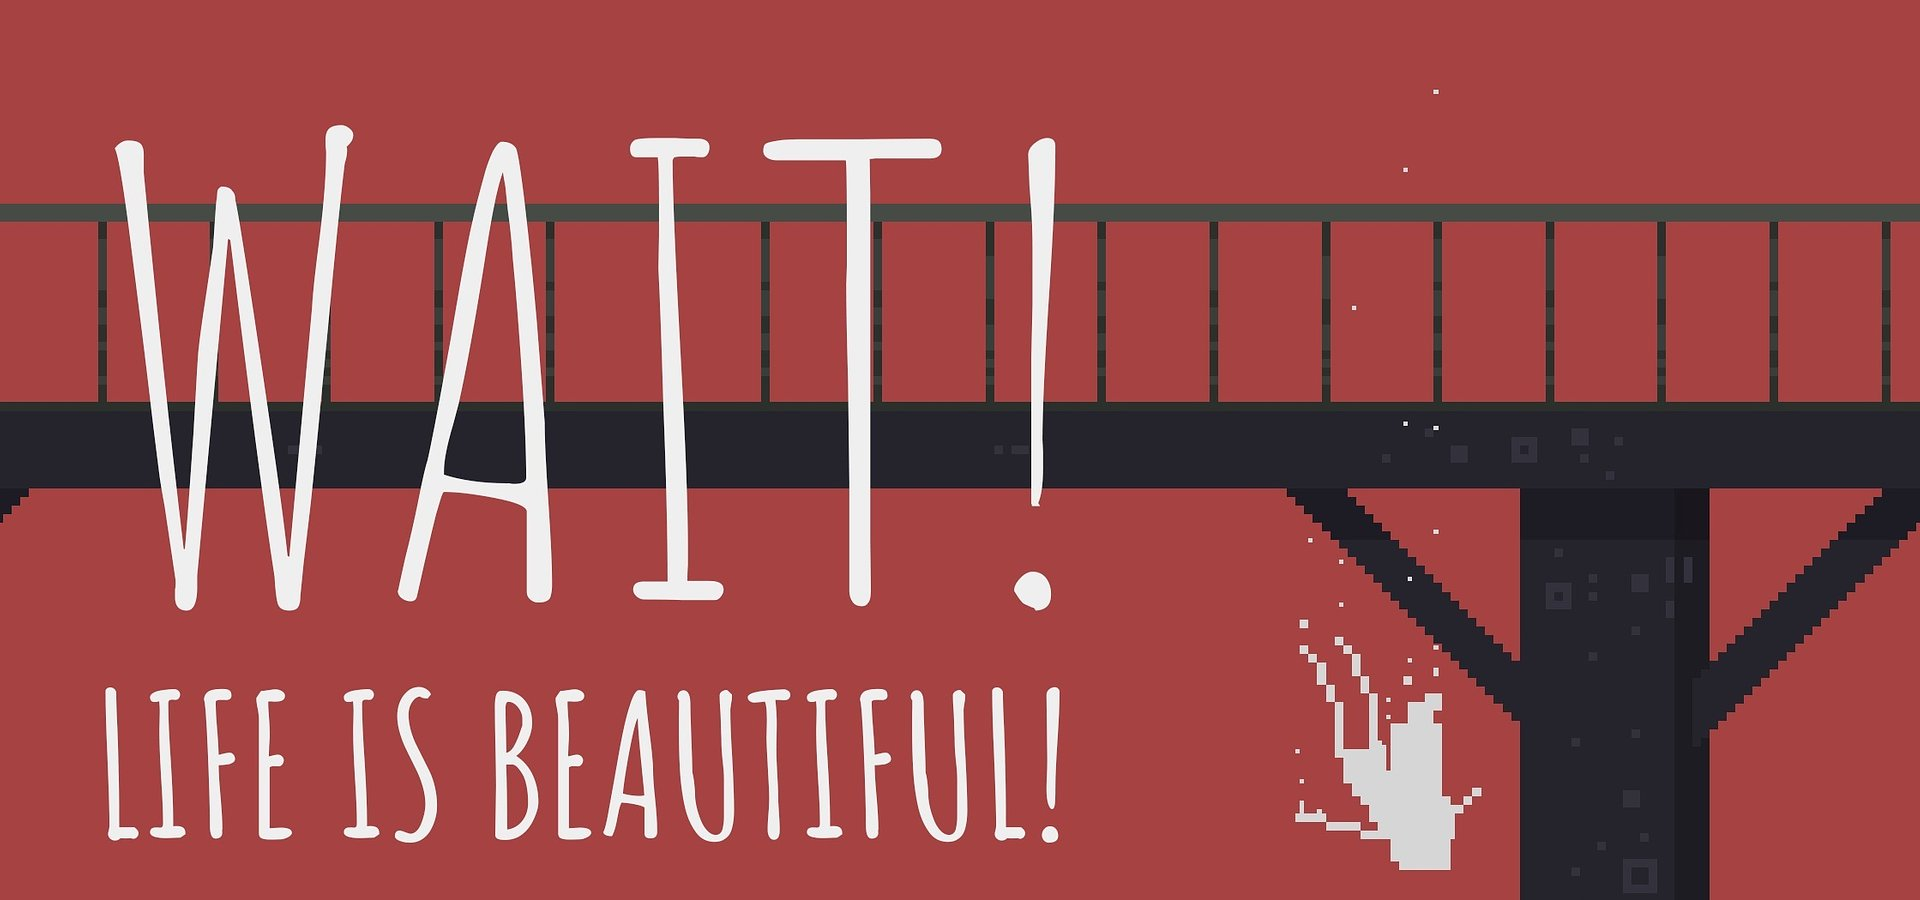 Interactive psychological thriller Wait! Life is Beautiful!